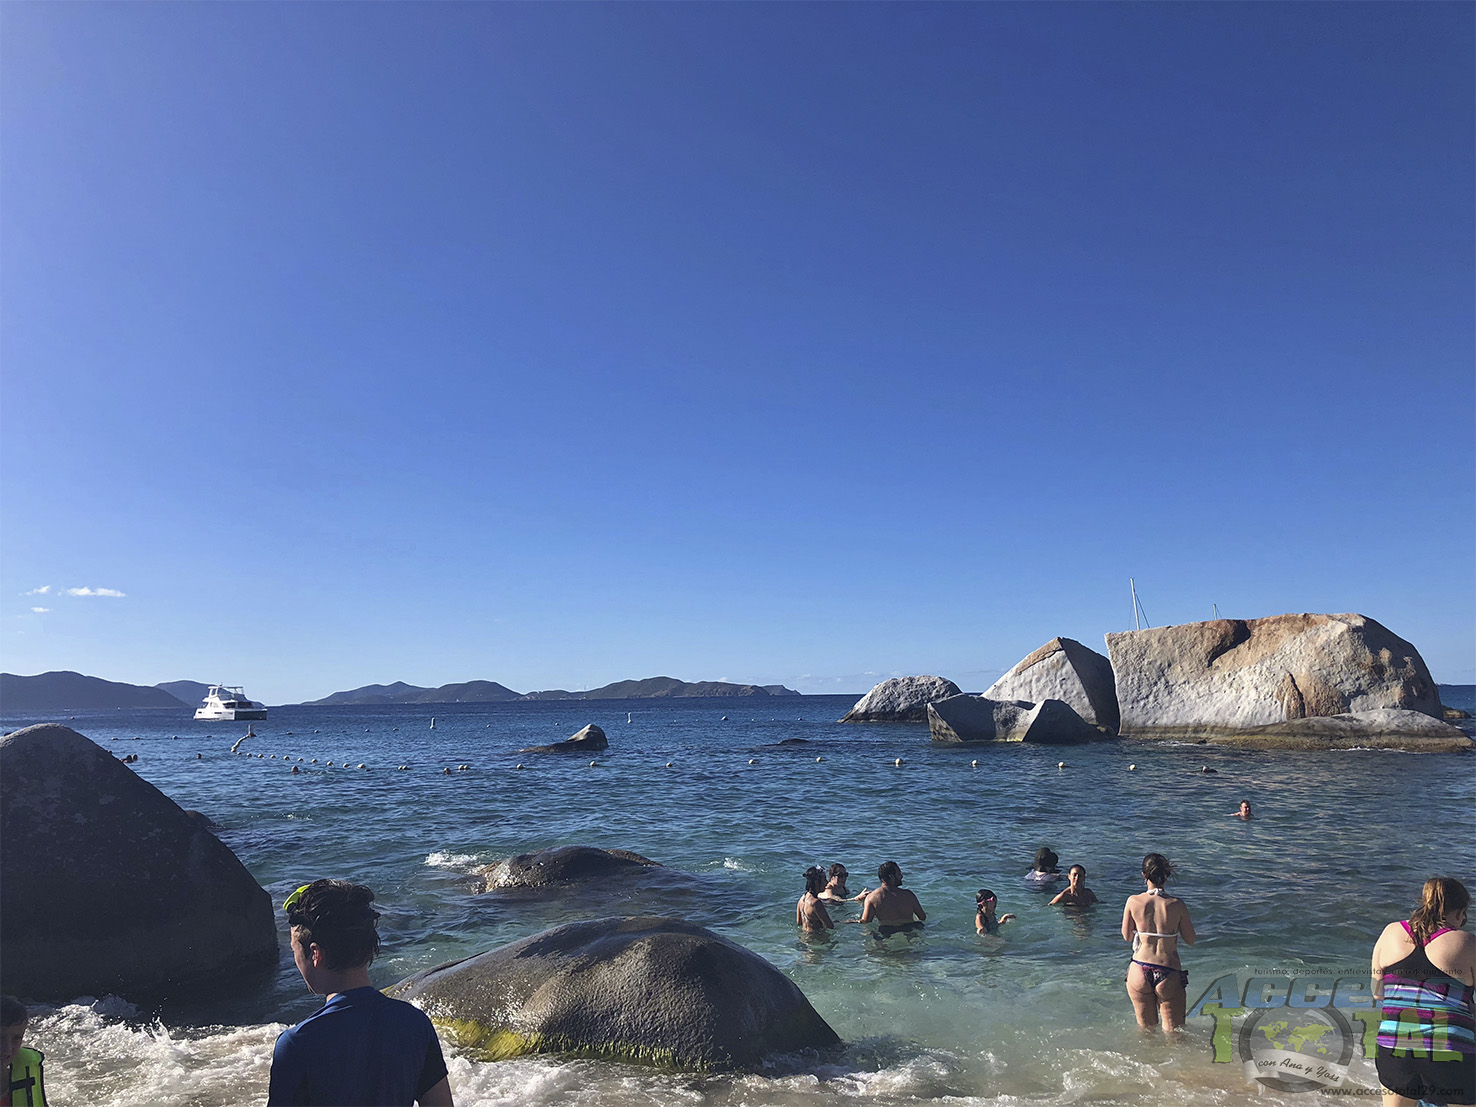 Devil's Bay – The Baths, Virgin Gorda